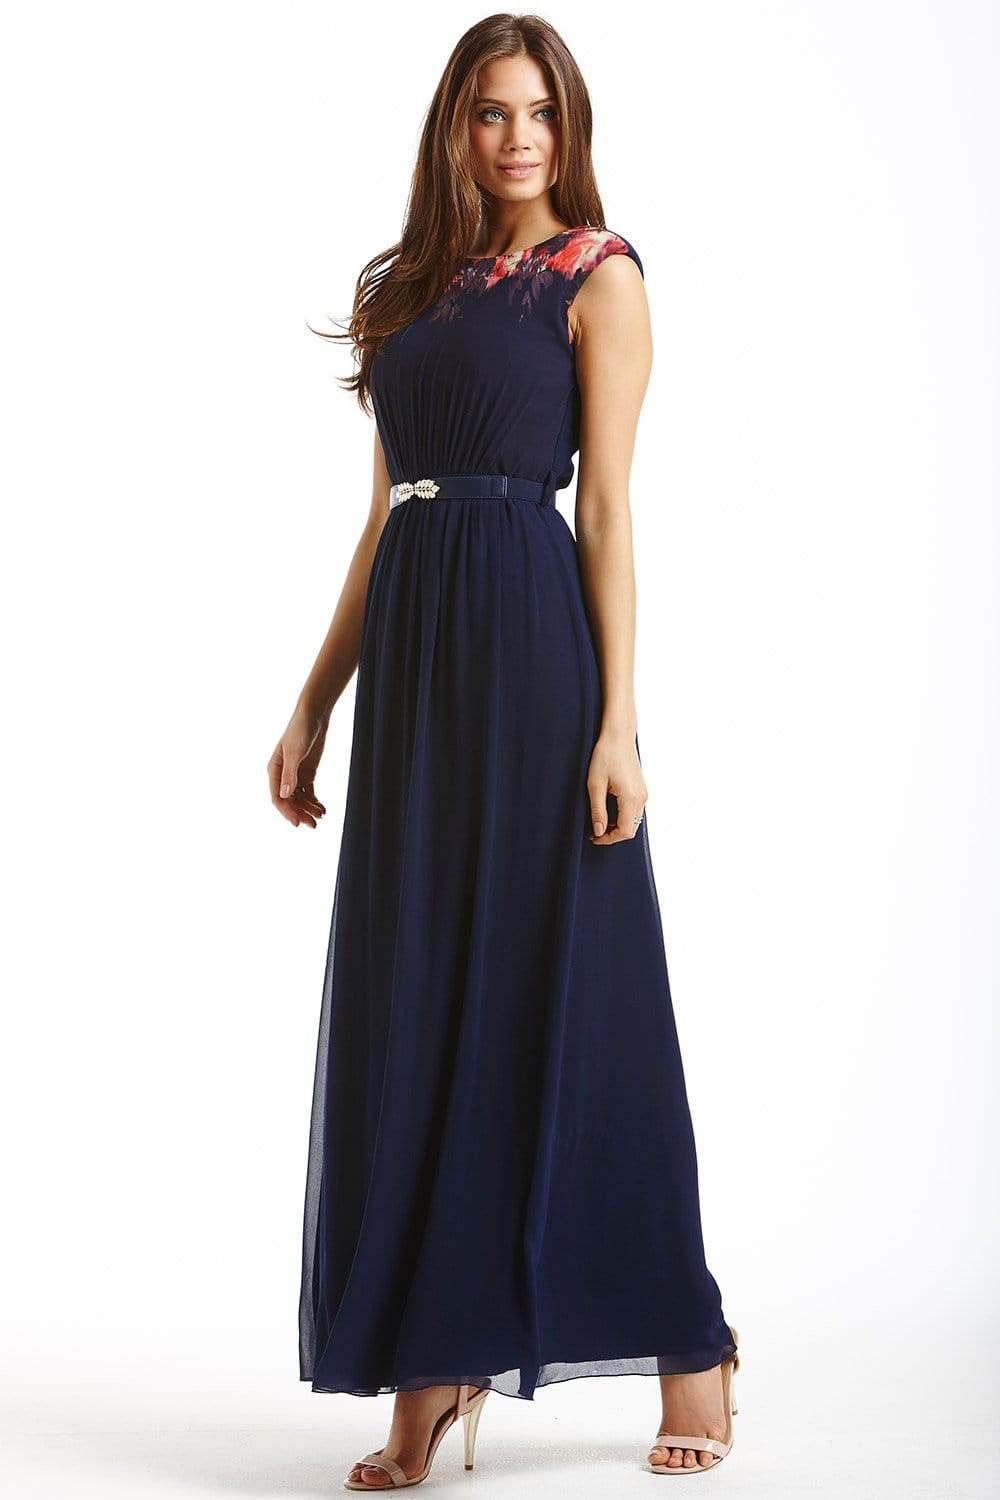 Navy Blurred Floral Chiffon Maxi Dress From Little